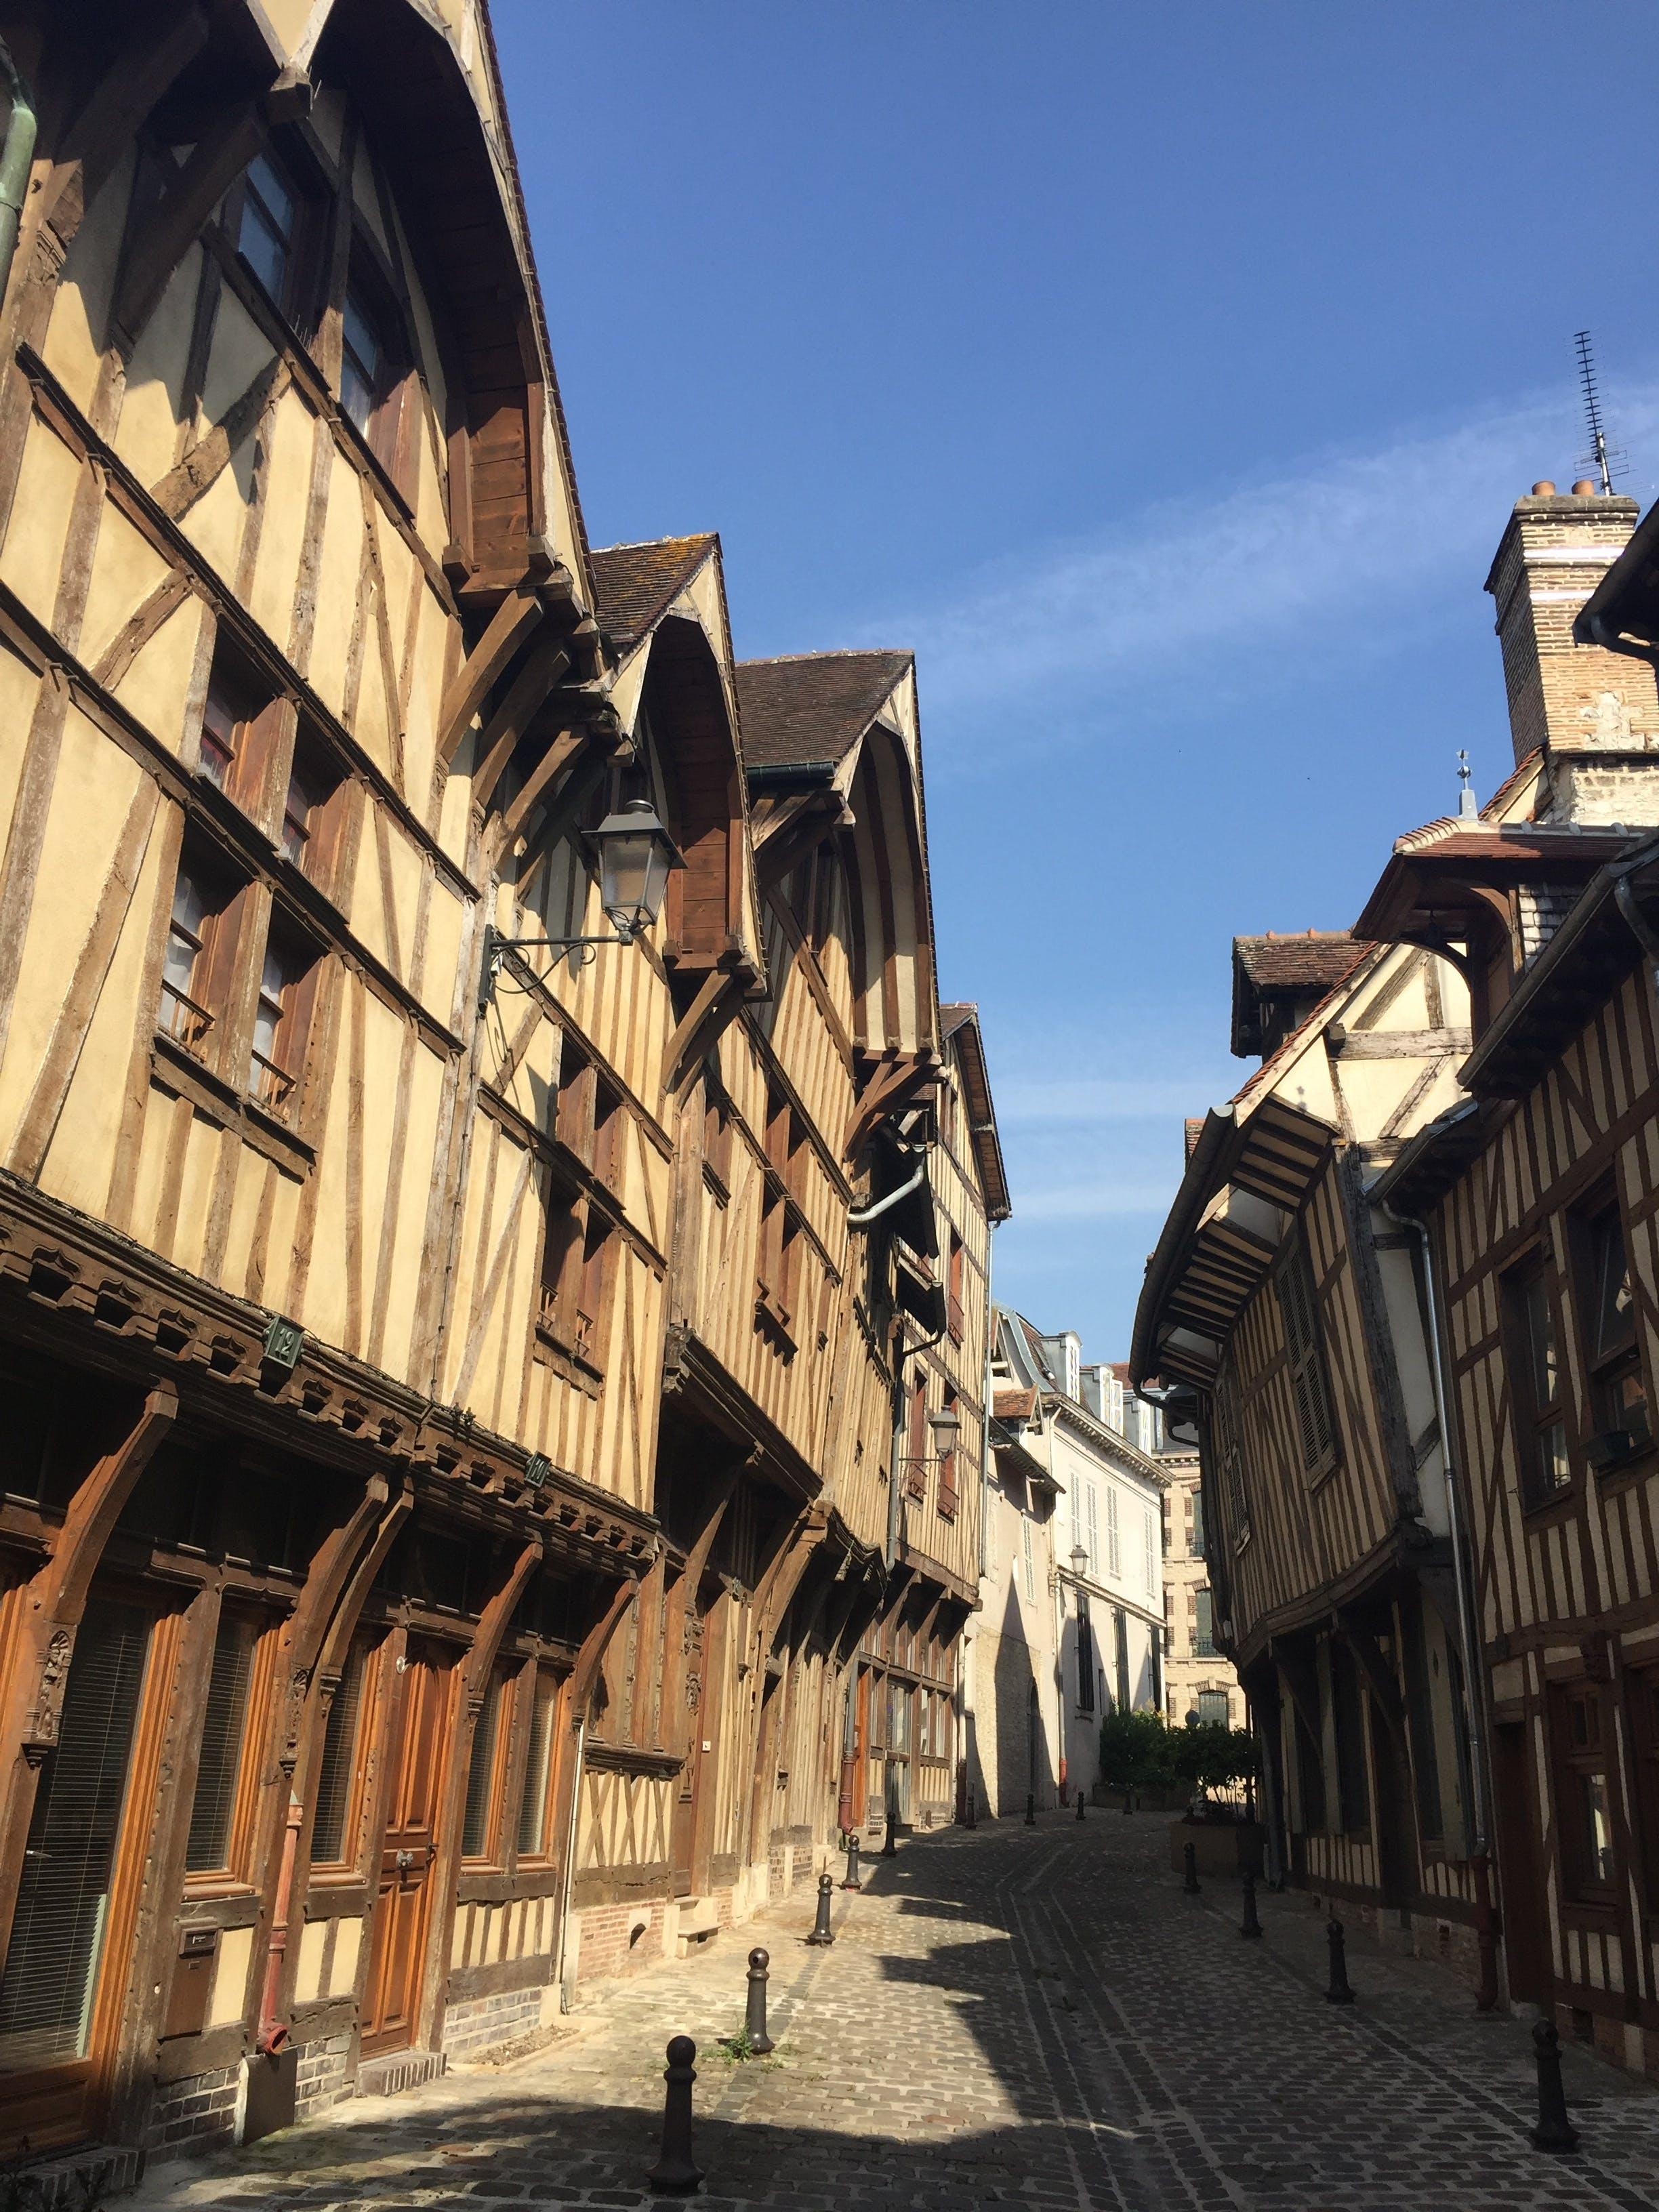 Free stock photo of 16 Century Wooden French Houses